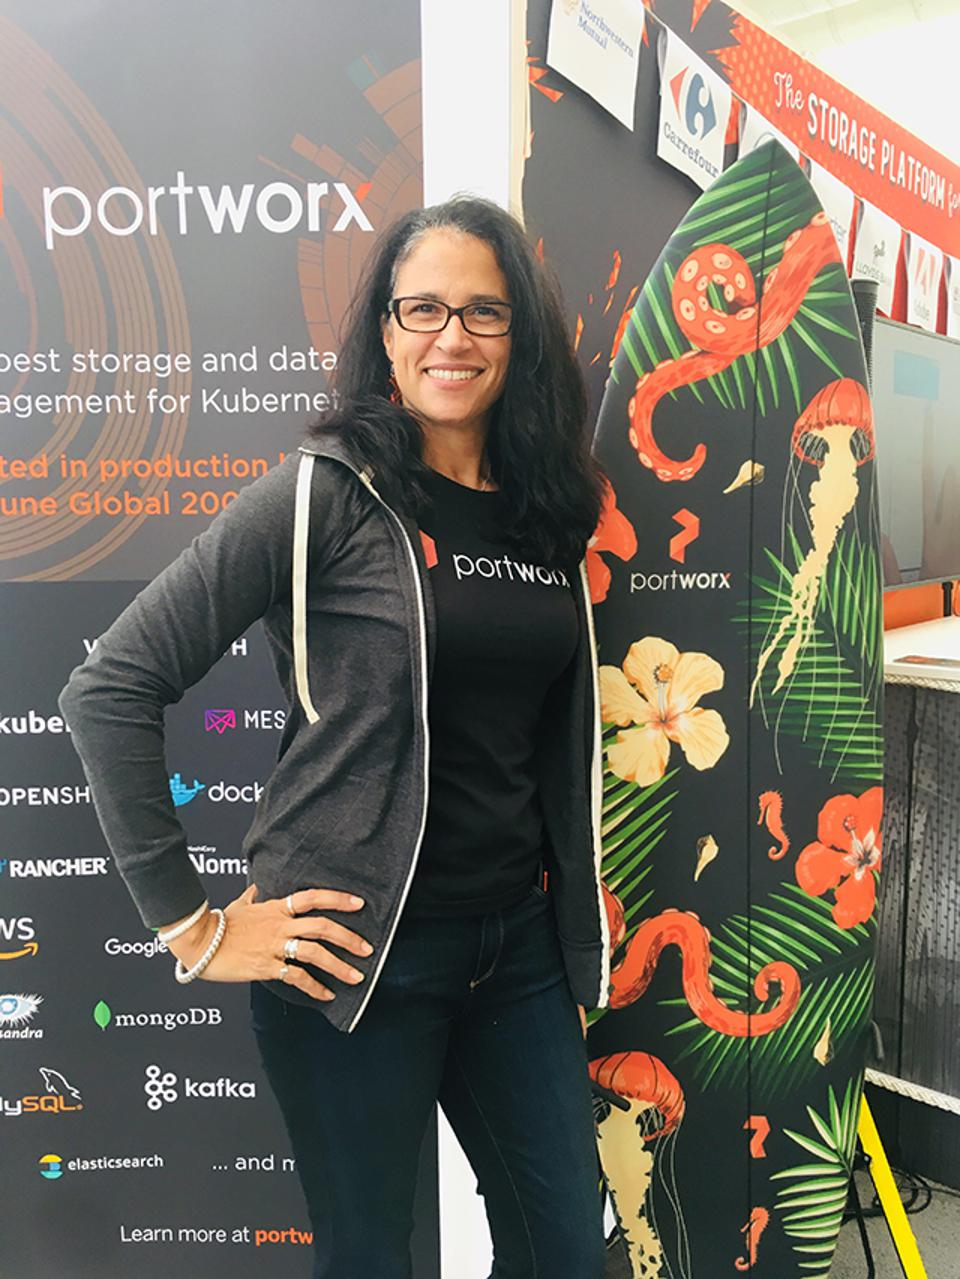 Lisa-Marie Namphy, a developer advocate and community architect at Portworx, runs the world's largest Cloud Native Computing Foundation meetup, Cloud Native Containers.